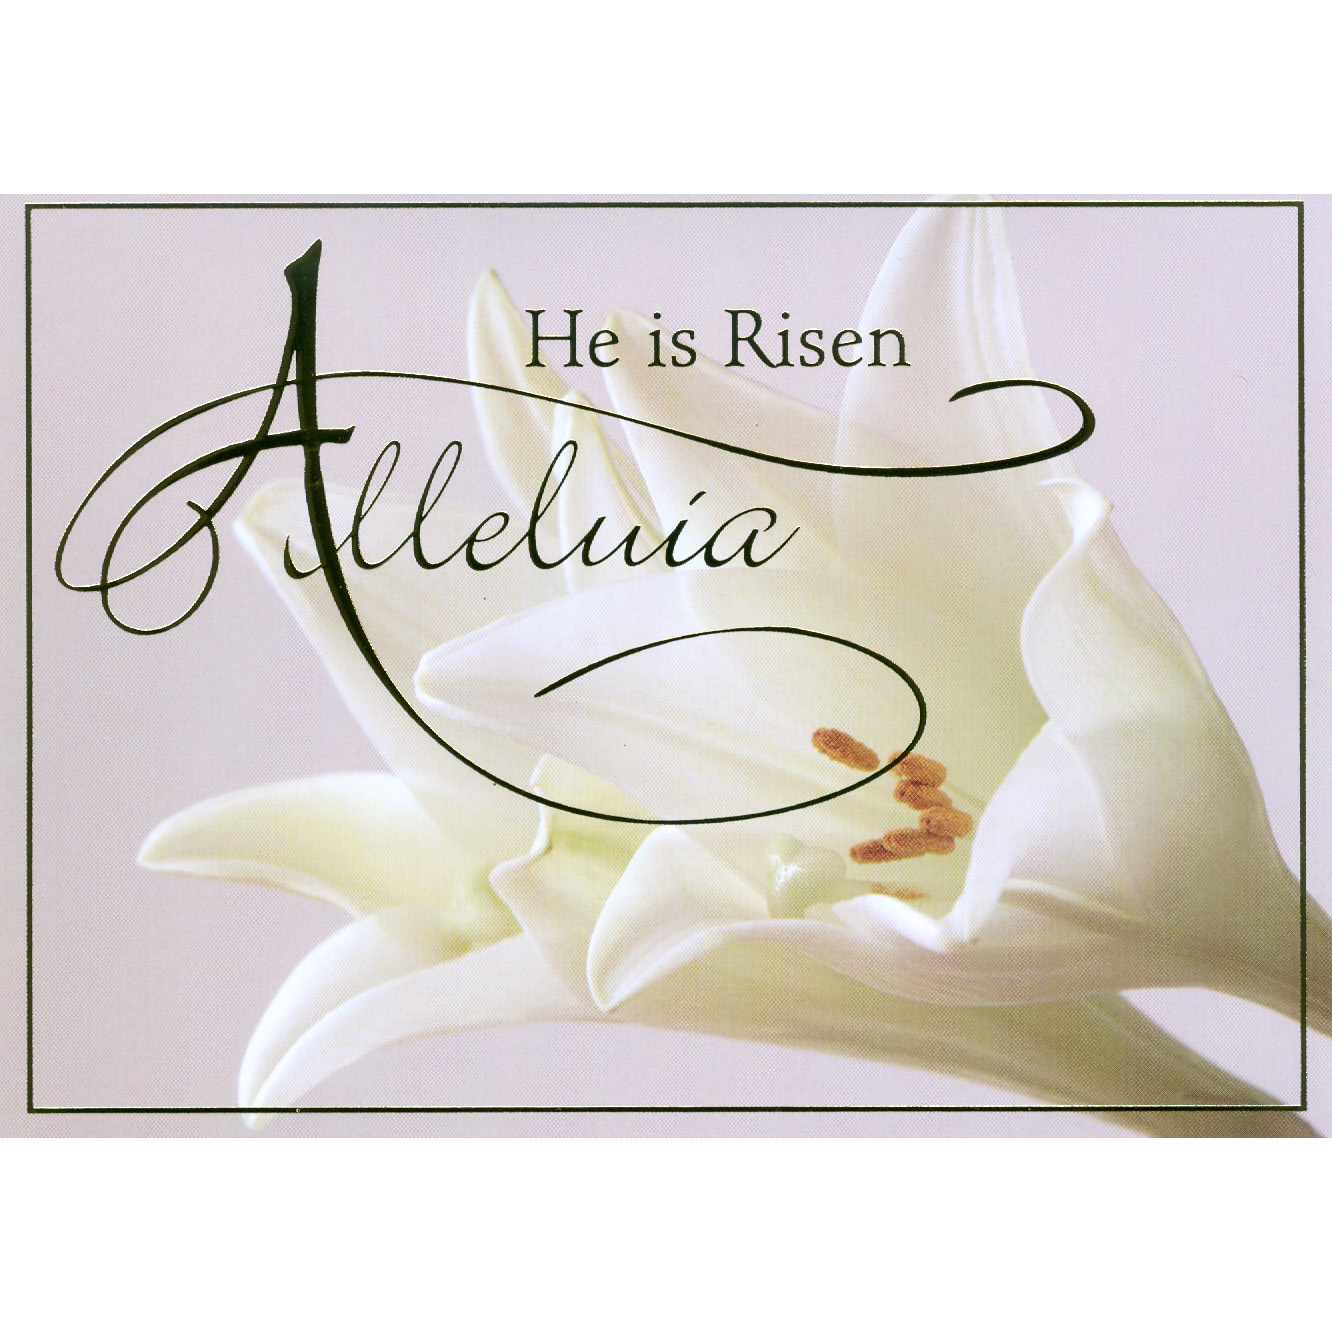 Alleluia Easter Boxed Cards 25Box St Andrews Book Gift – Boxed Easter Cards